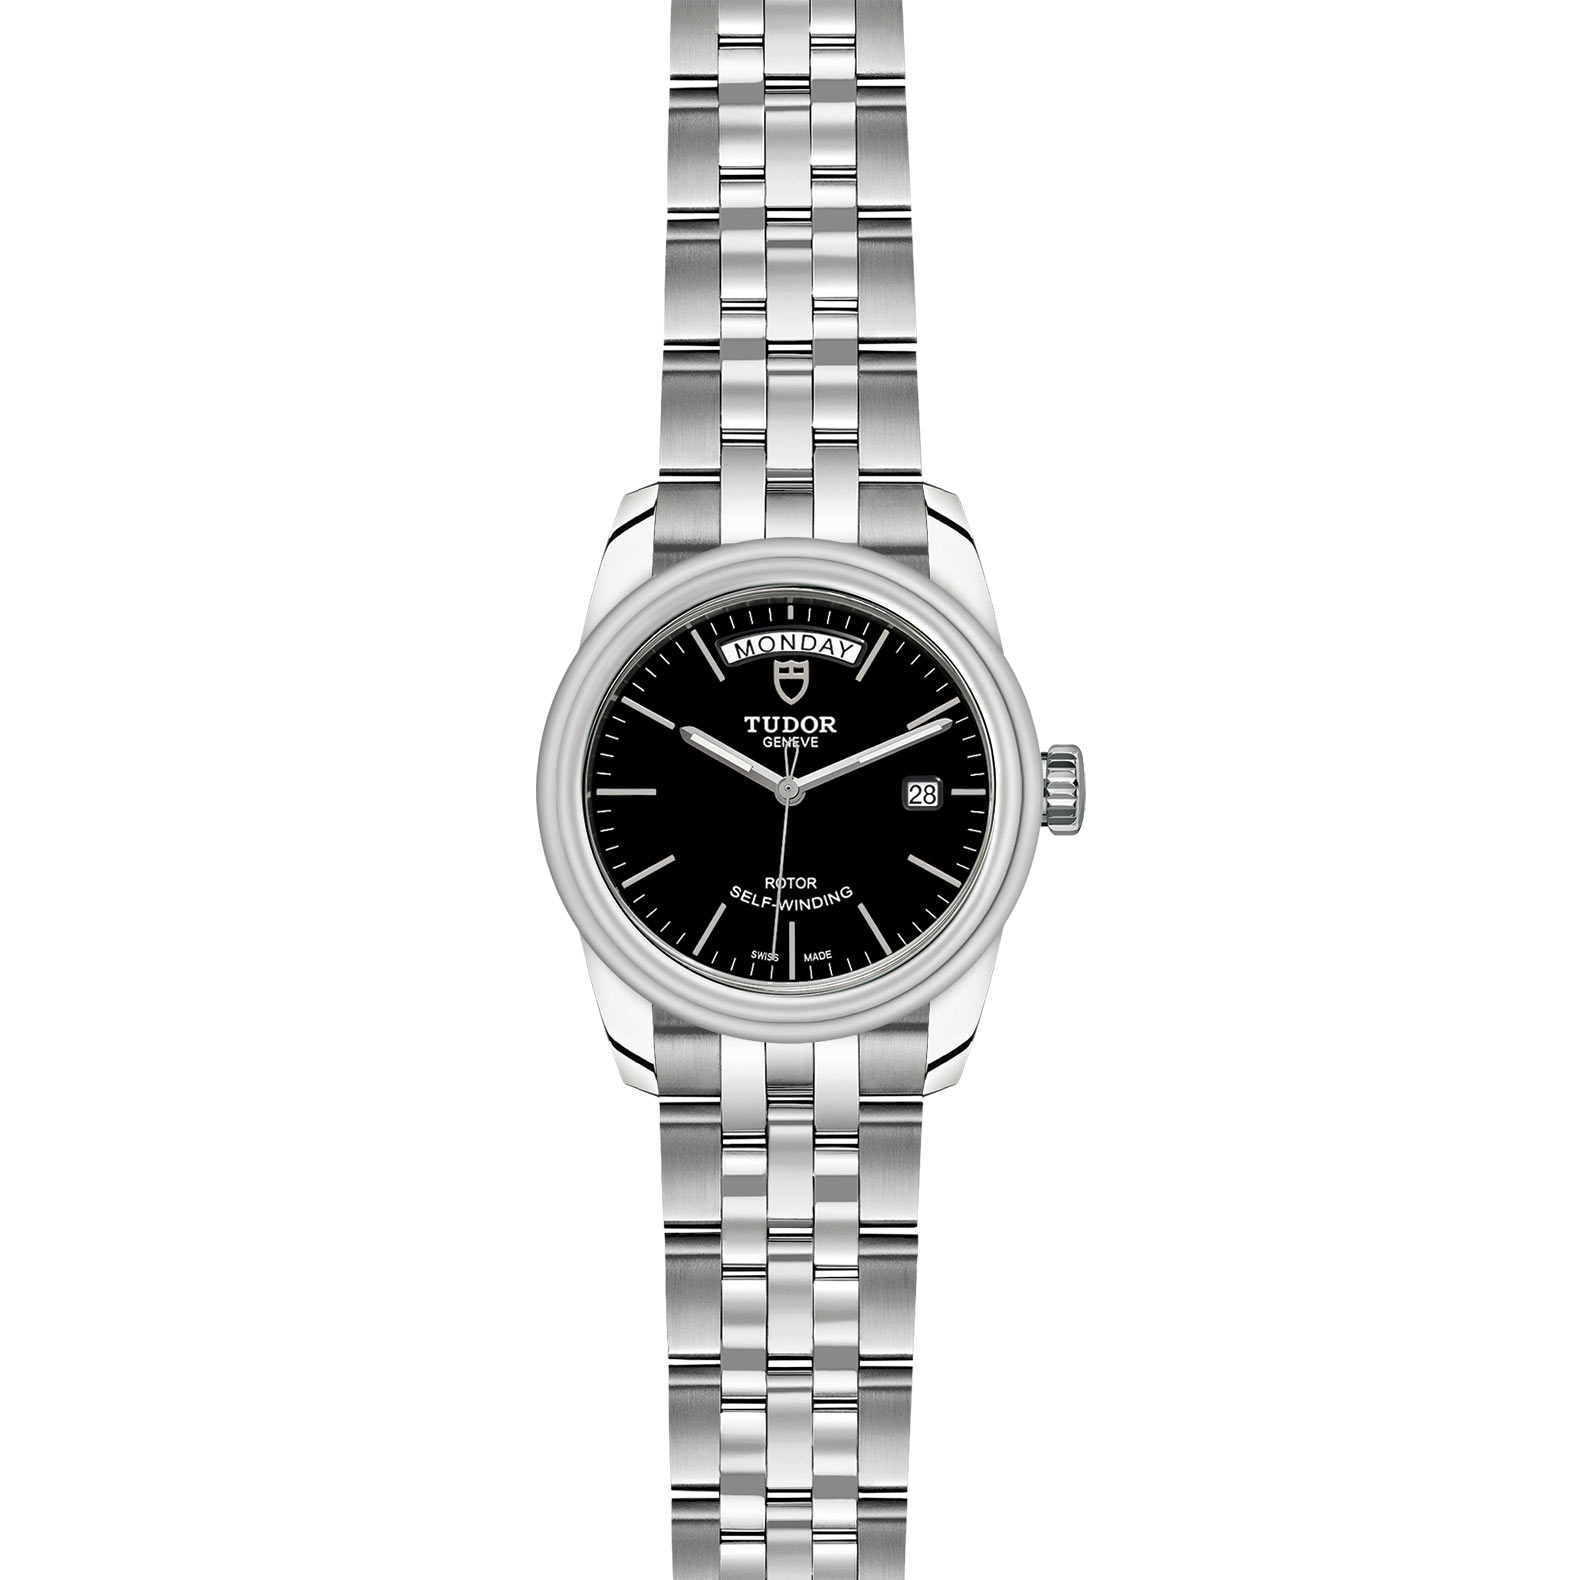 TUDOR Glamour Date Day M56000 0007 Frontfacing